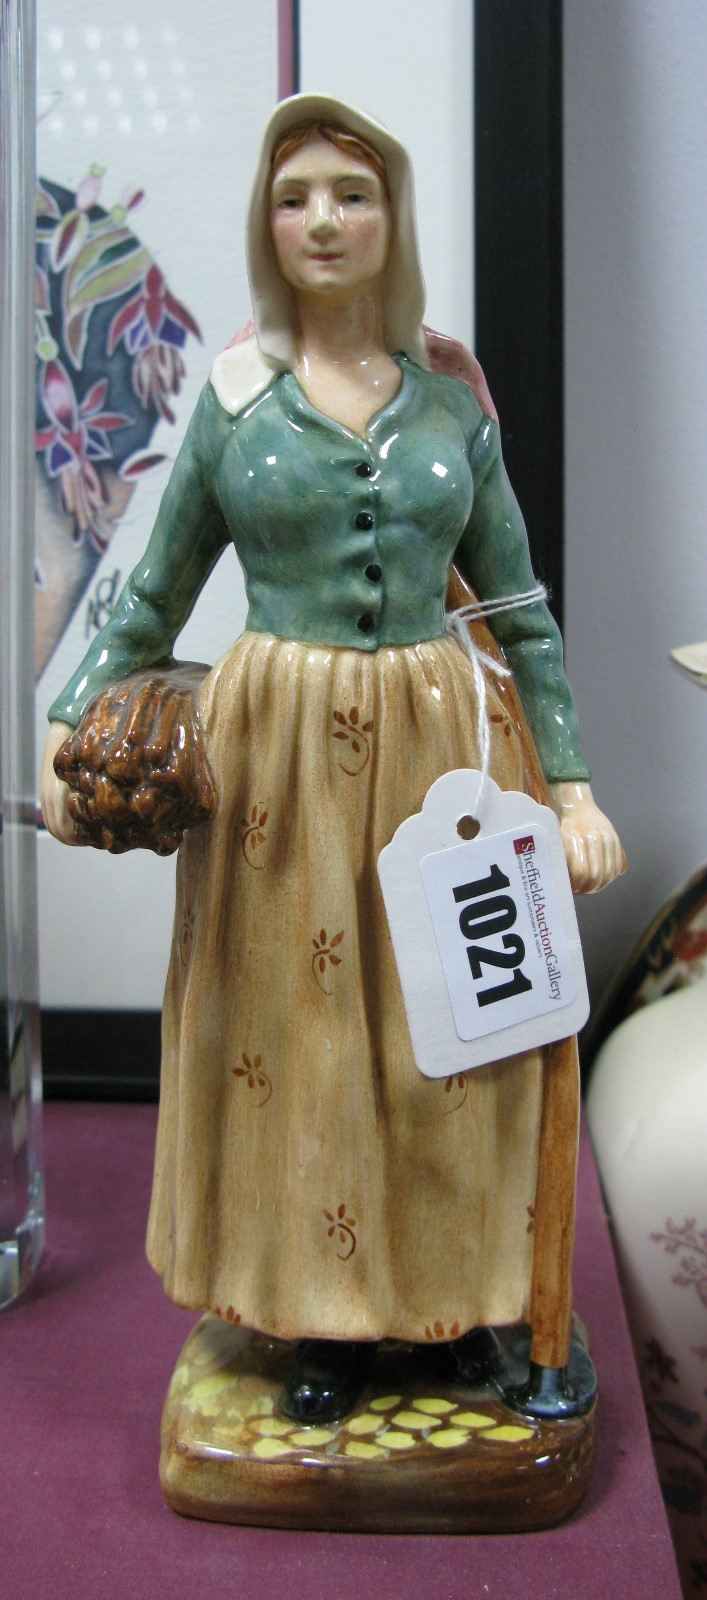 Lot 1021 - A Royal Doulton Figurine 'French Peasant' HN 2075.